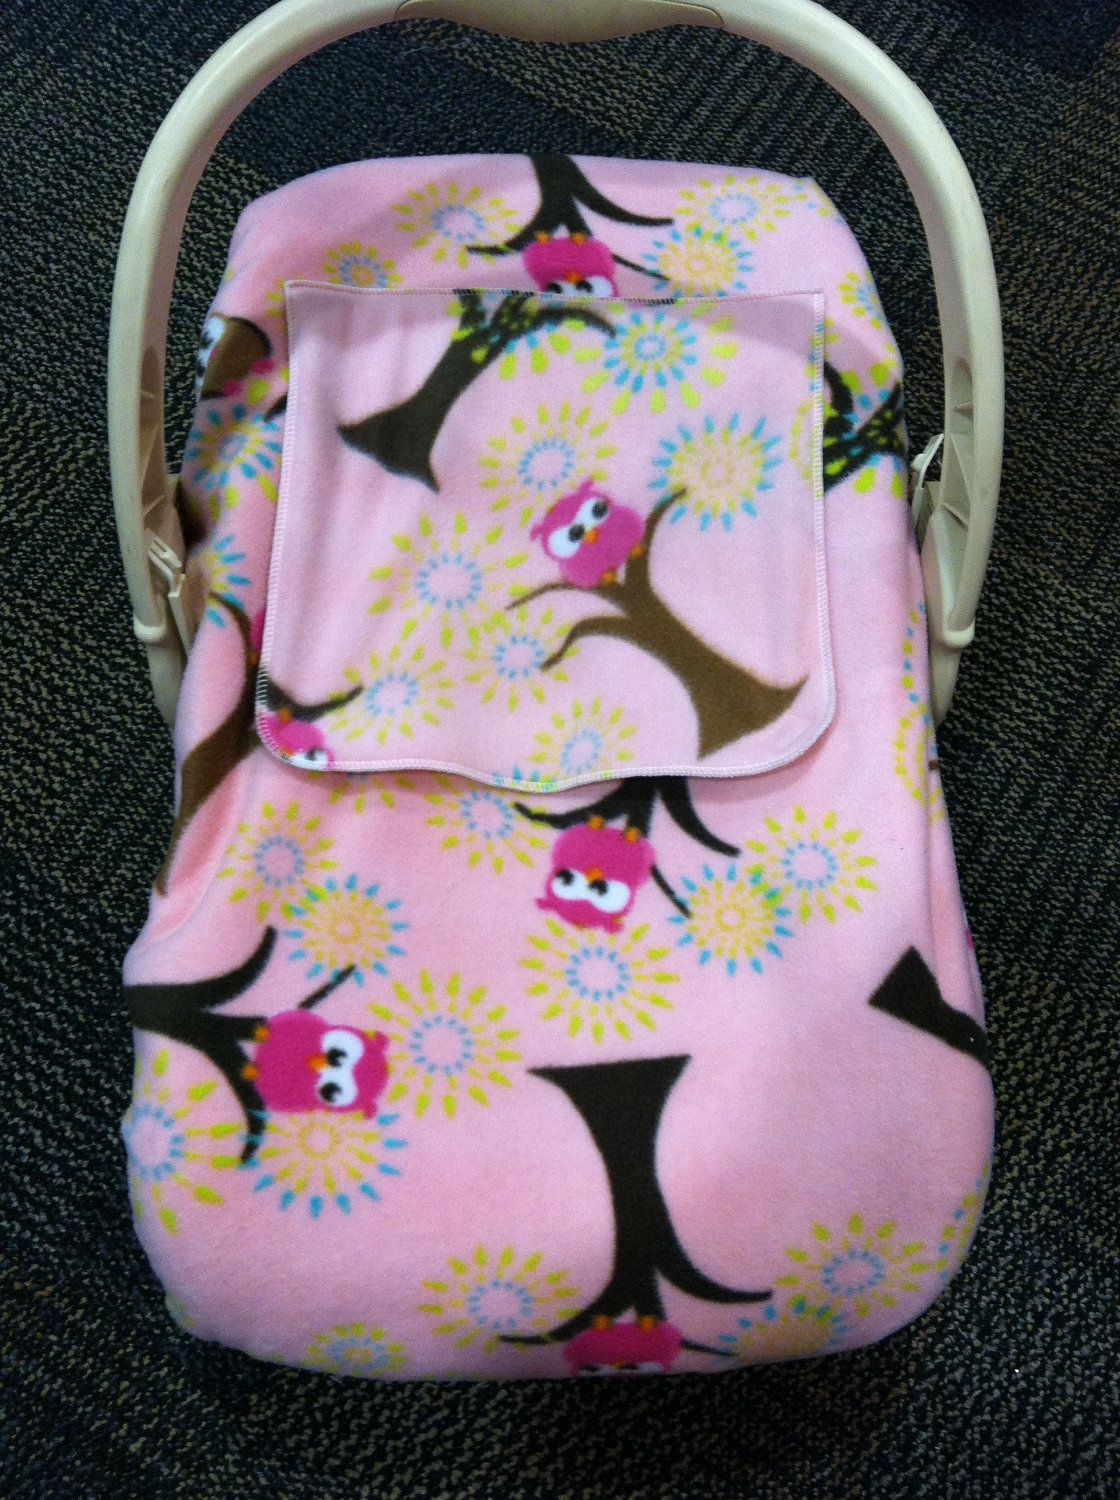 Another Possible Idea For A Car Seat Cover Pattern If We Dont Get One At The Shower Pink Hooty Owl Fleece 2500 Via Etsy